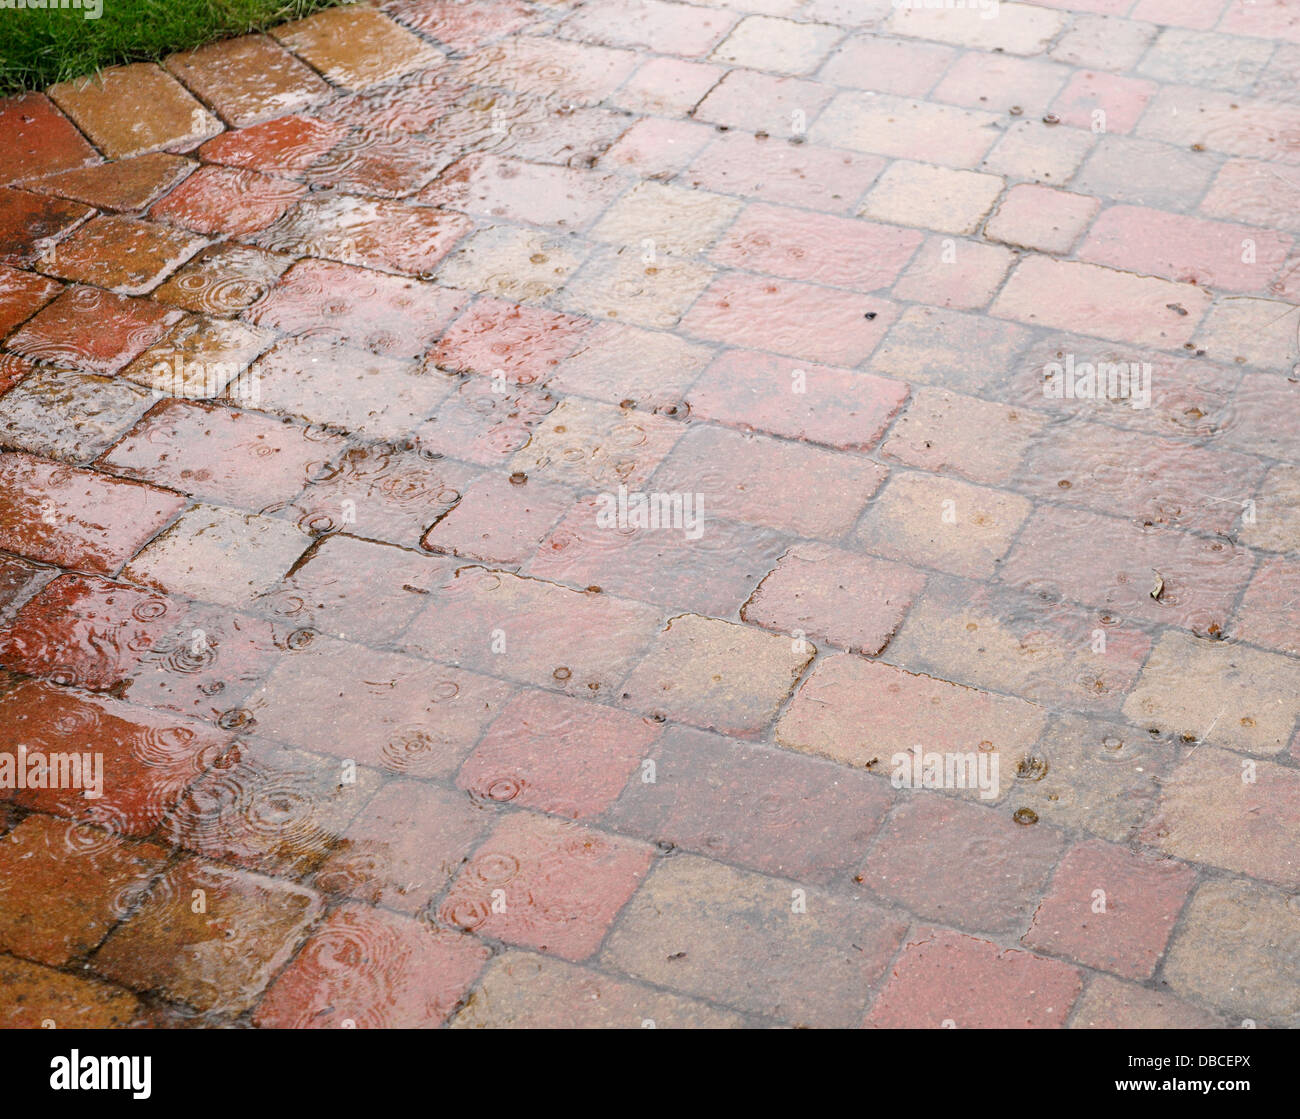 Heavy Raindrops Splashing On Rustic Red Brick Patio Paving In UK Garden  With Porous Joints Acting As Surface Water Soakaway